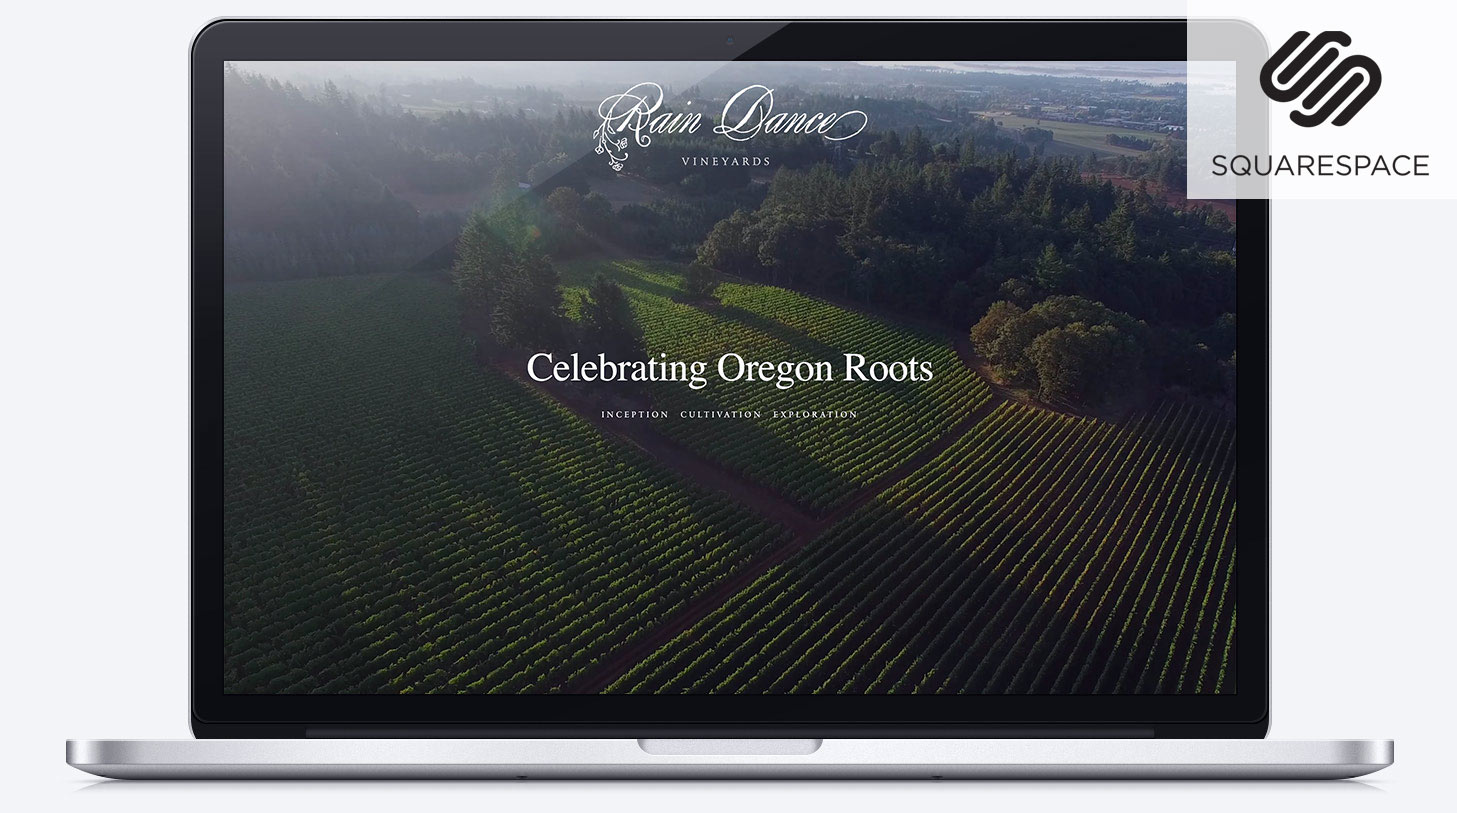 Squarespace websites for wineries